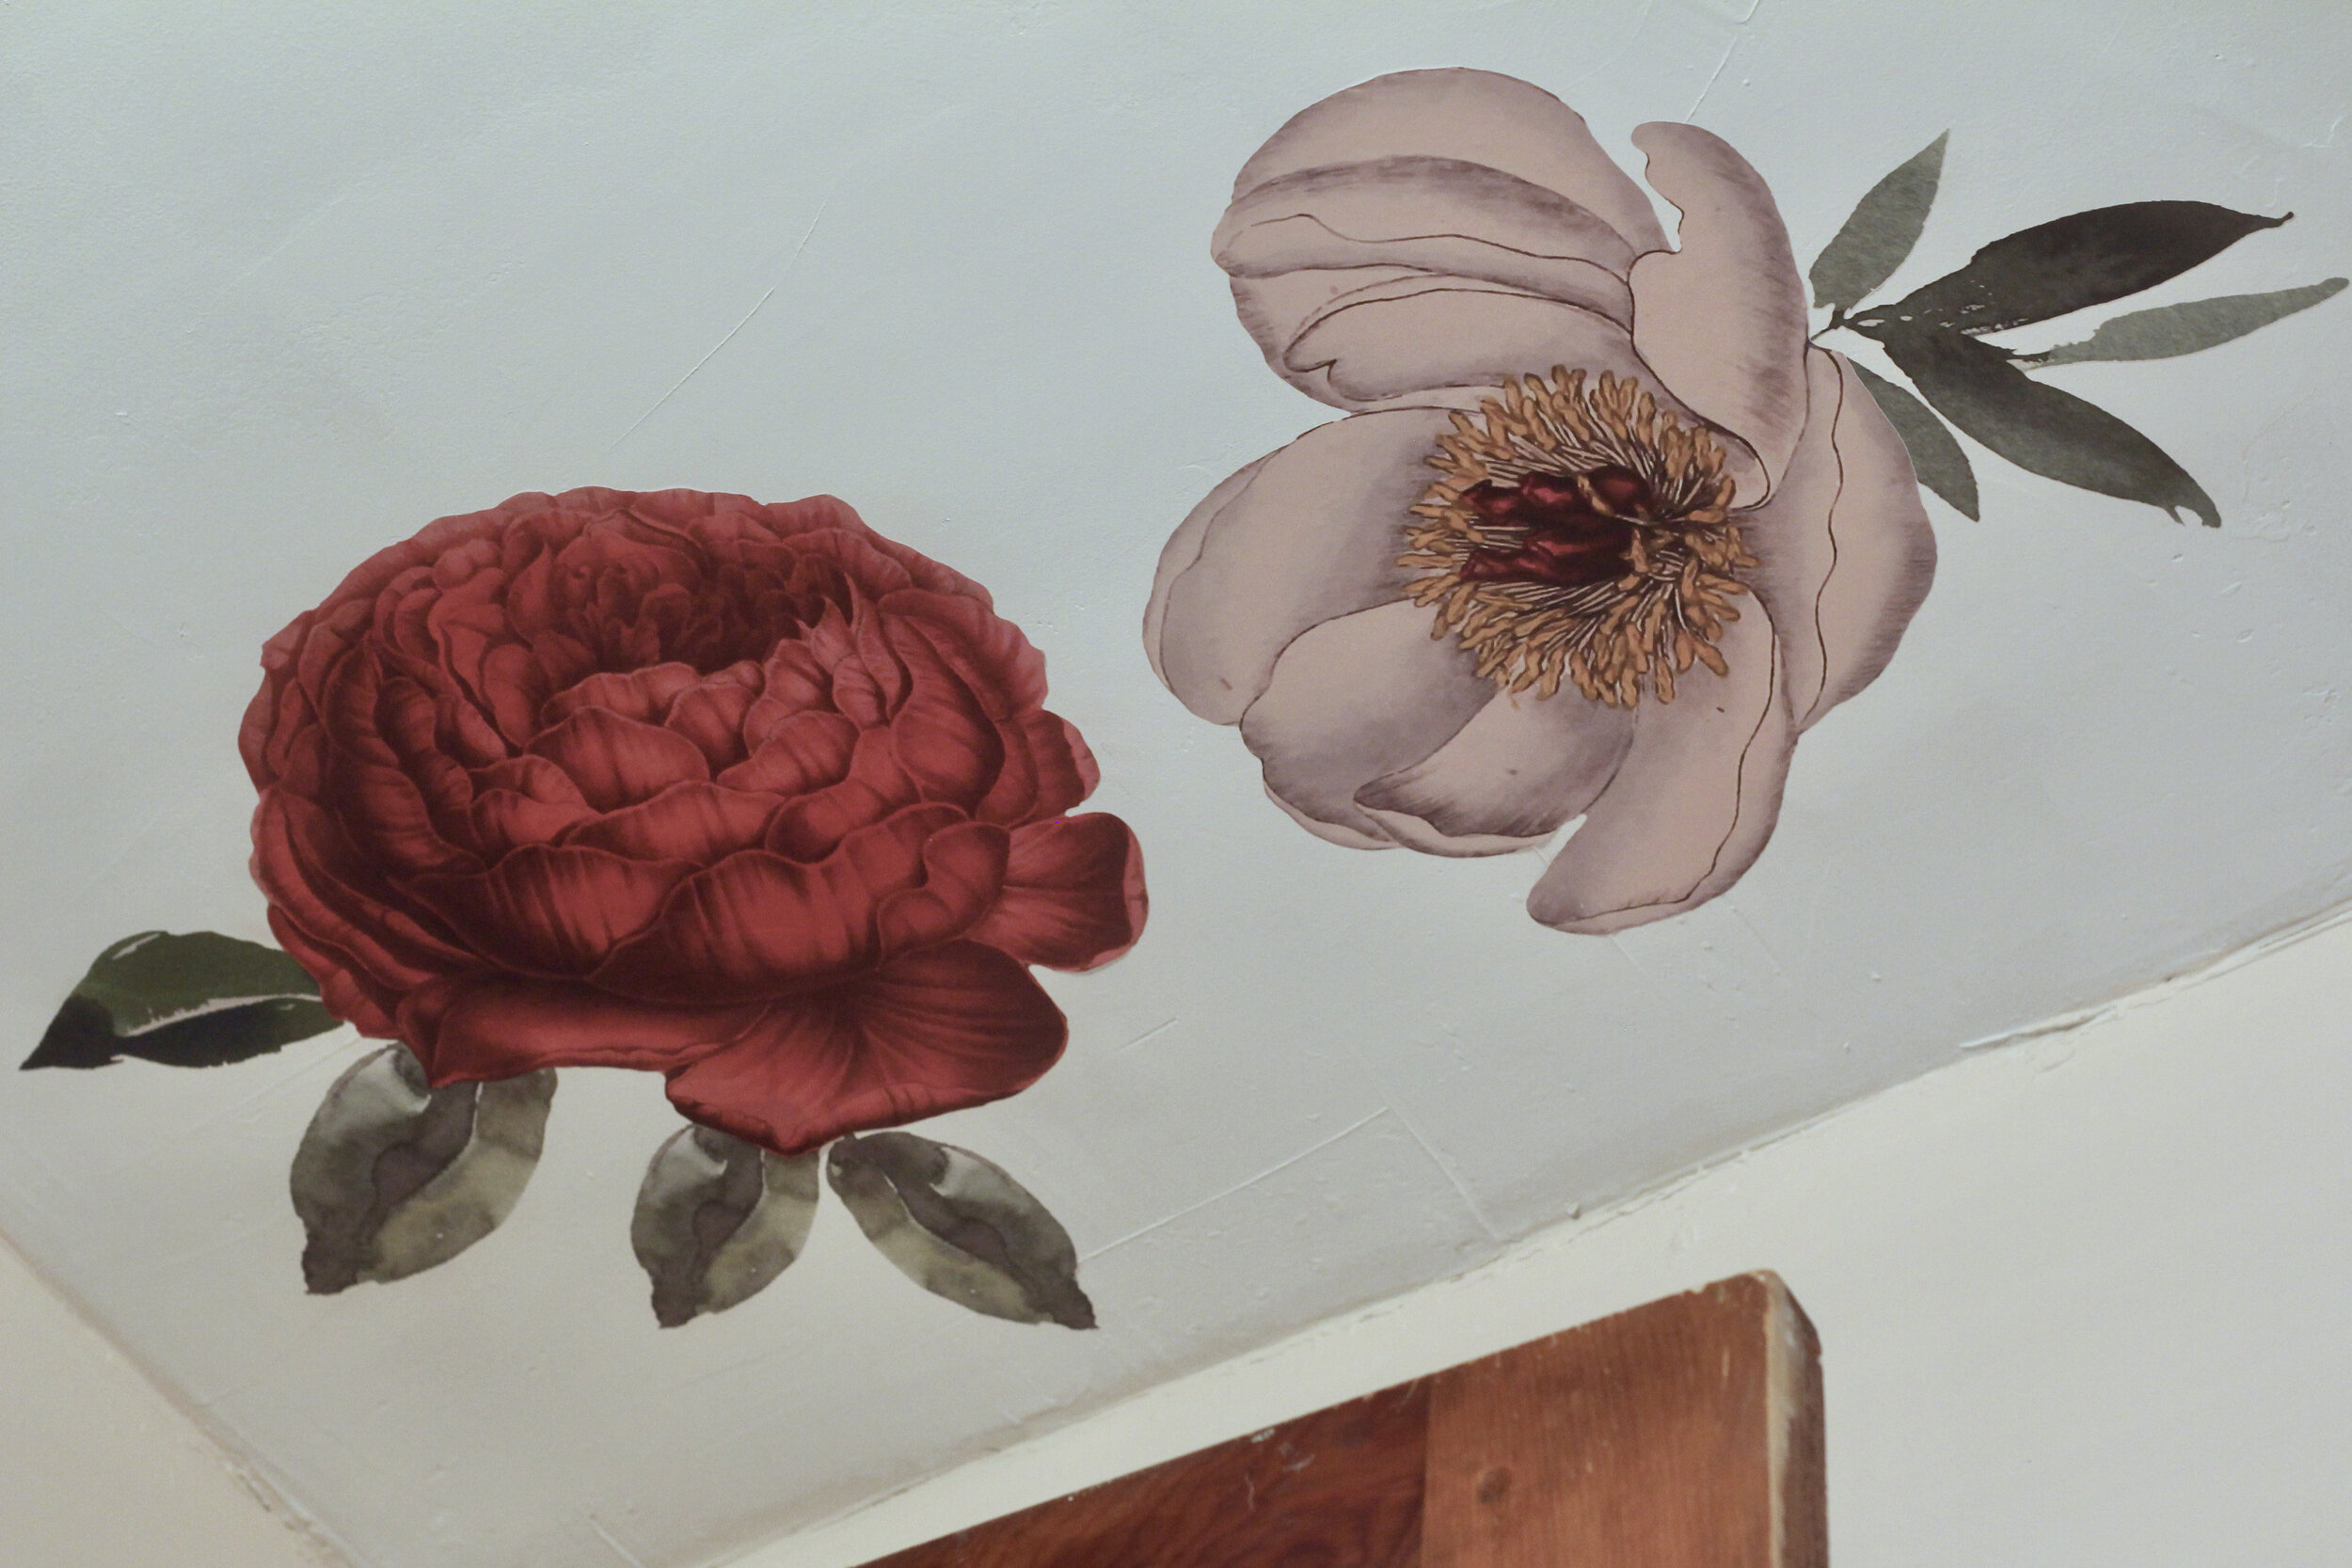 Floral decals on ceiling